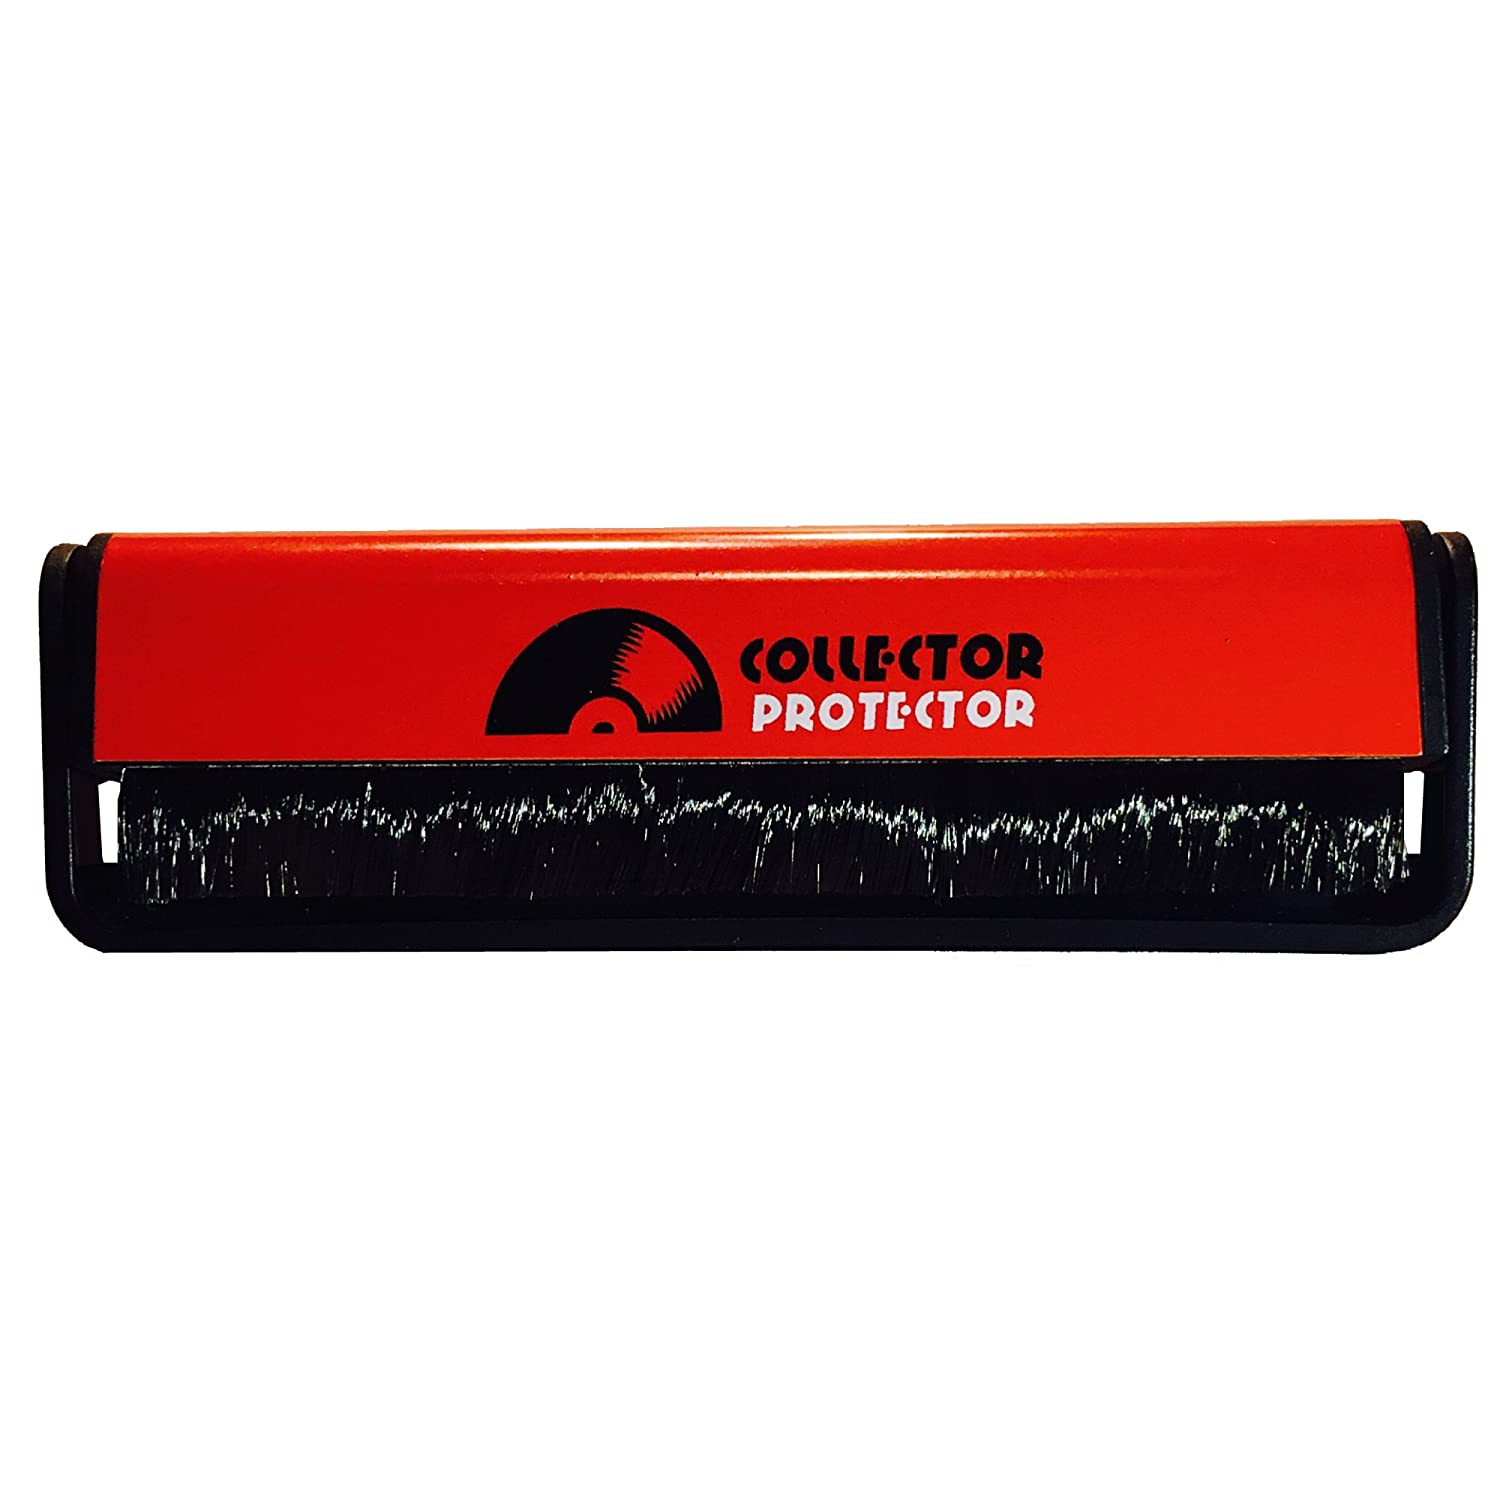 Amazon.com: Collector Protector Vinyl Record Spray Cleaner and Anti ...